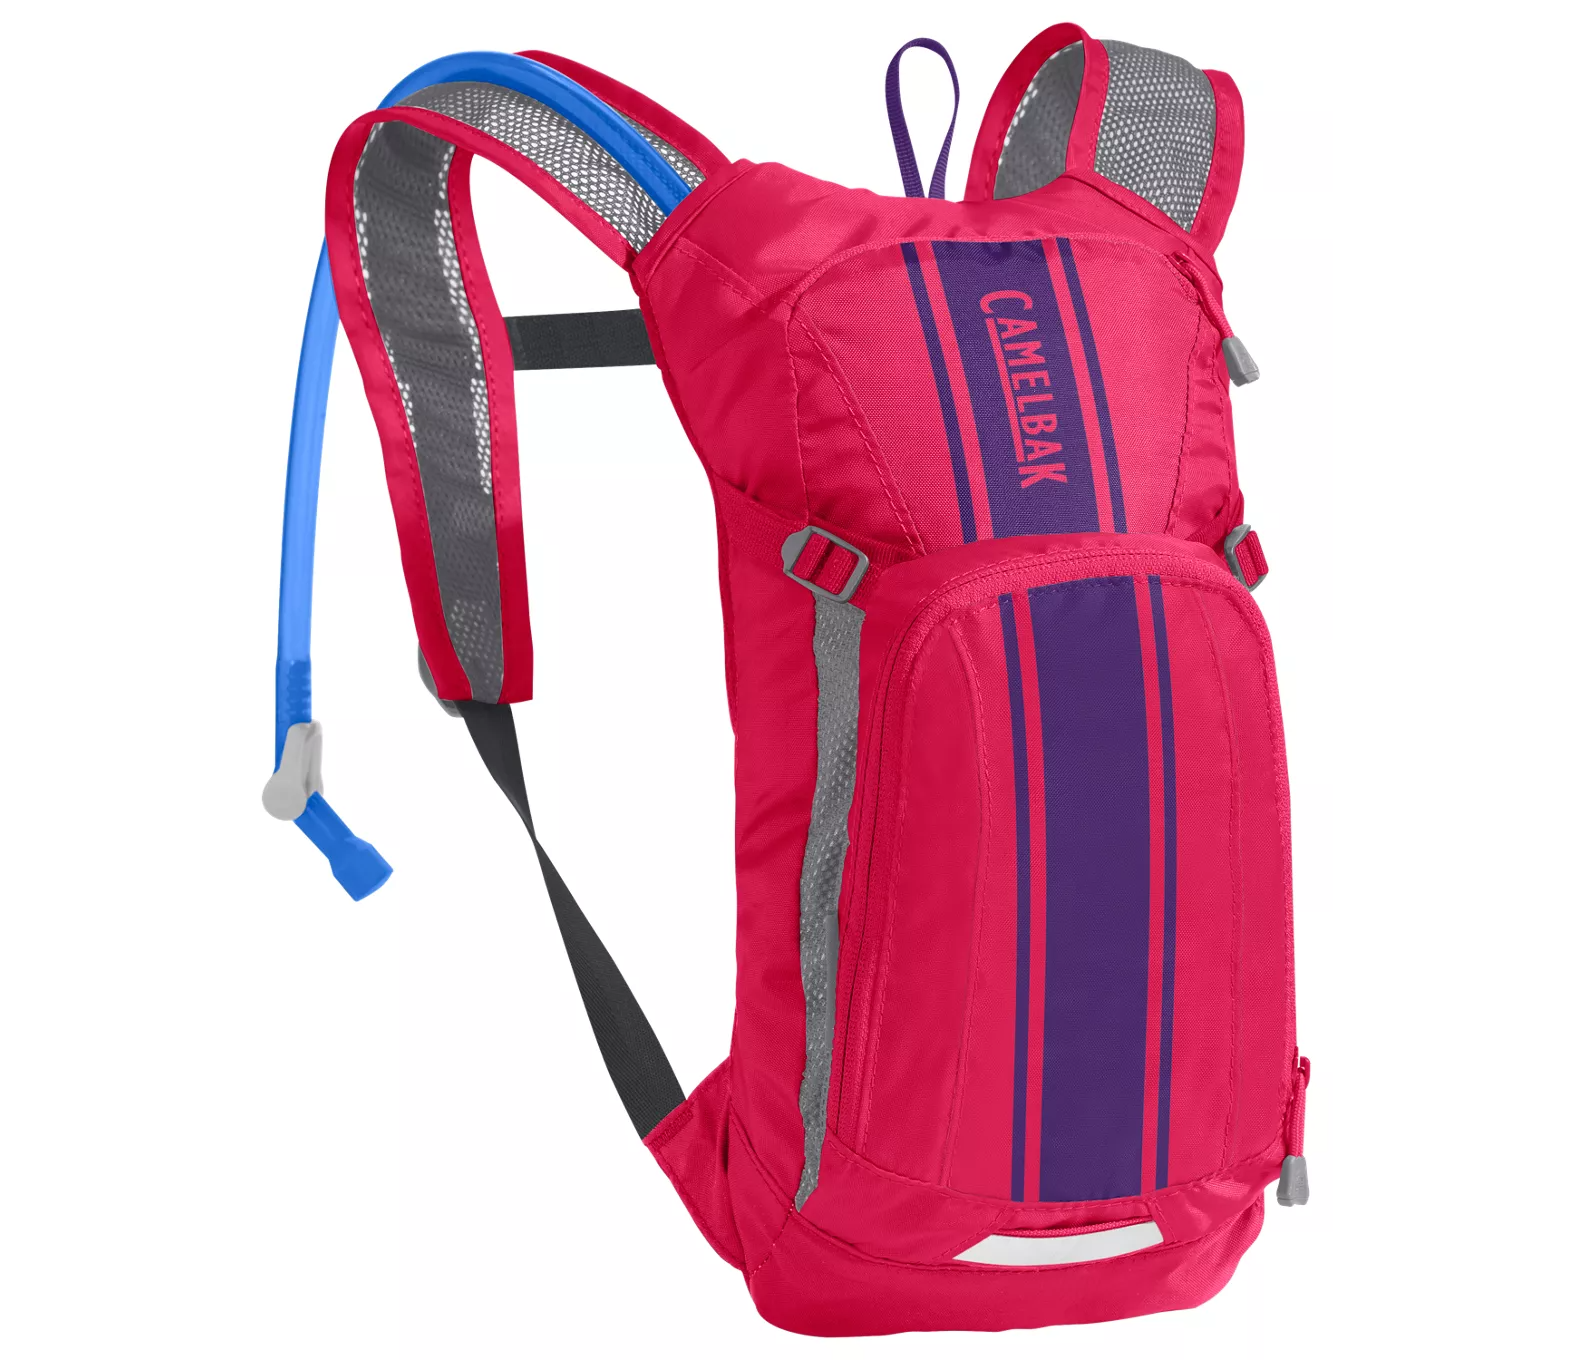 a backpack in pink